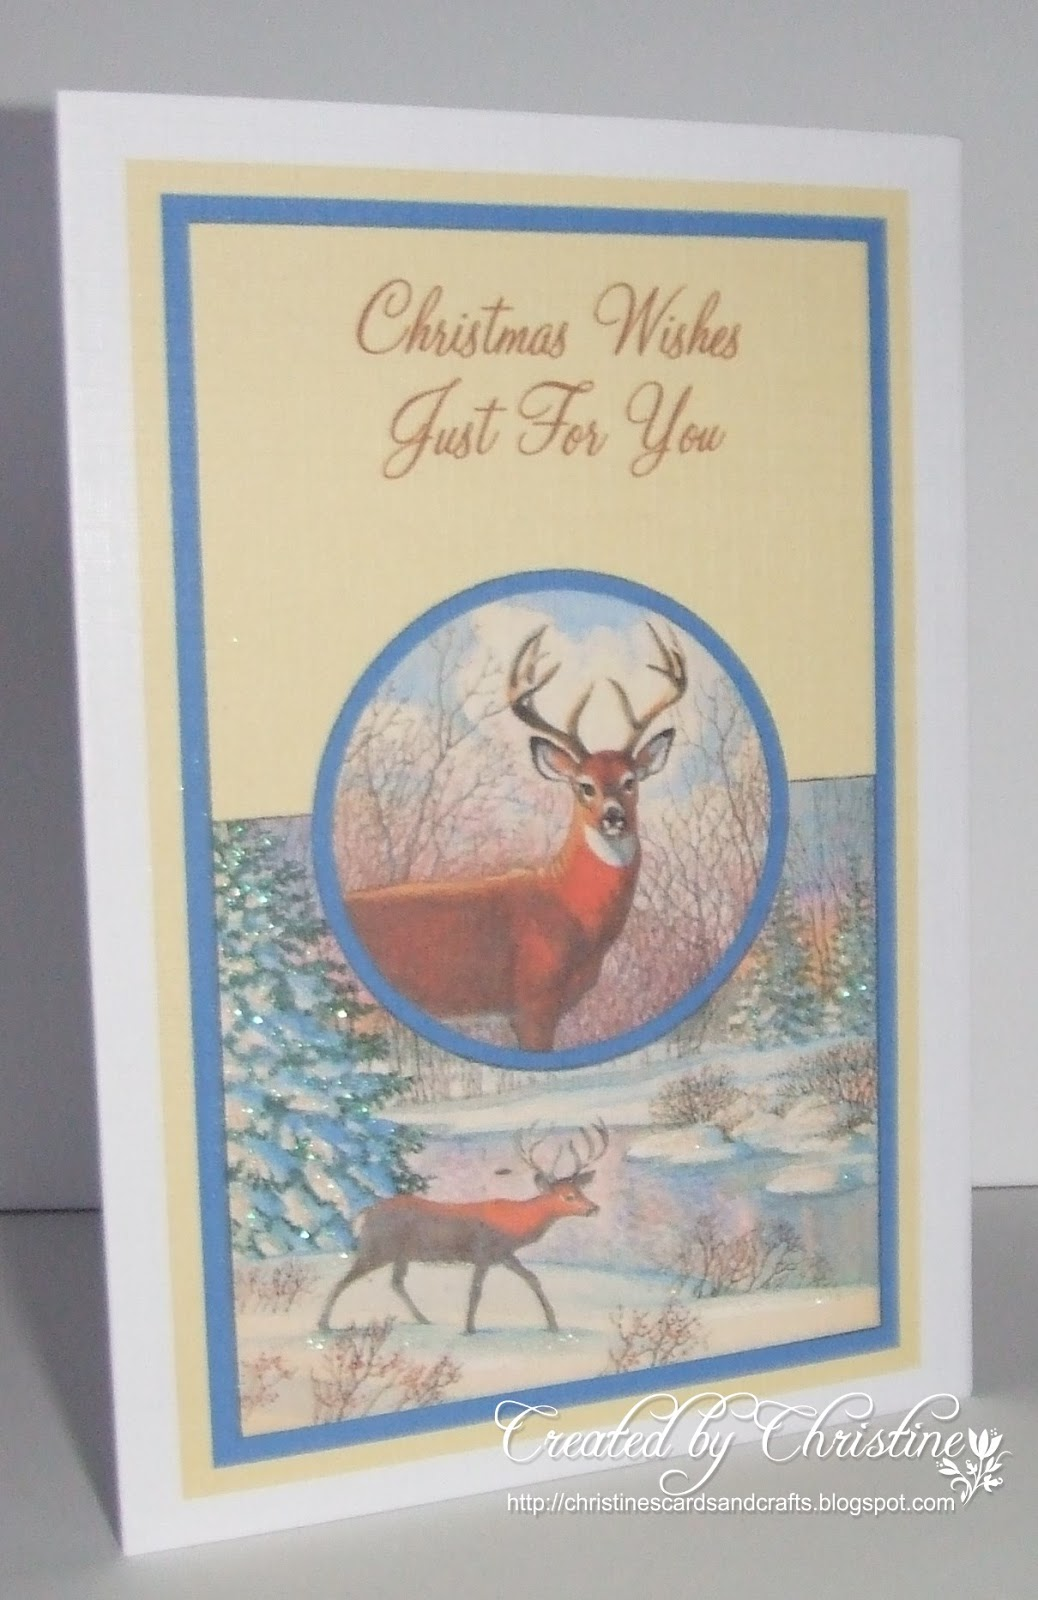 Christines Cards And Crafts Snow Globe With Reindeer Shaker Card